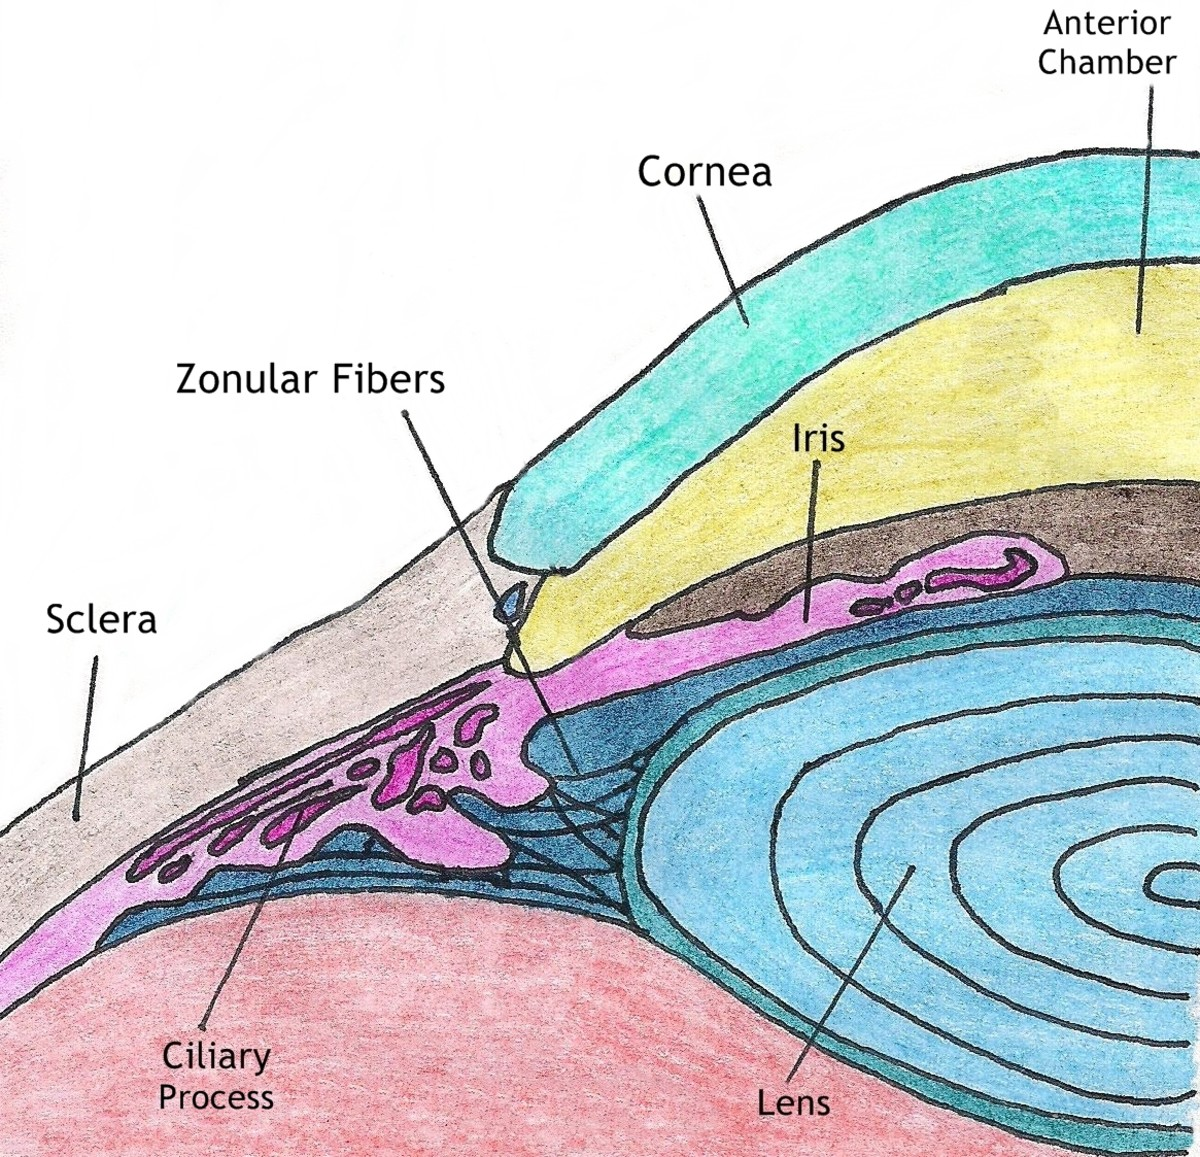 A diagram showing the location of the iris, lens and anterior chamber.